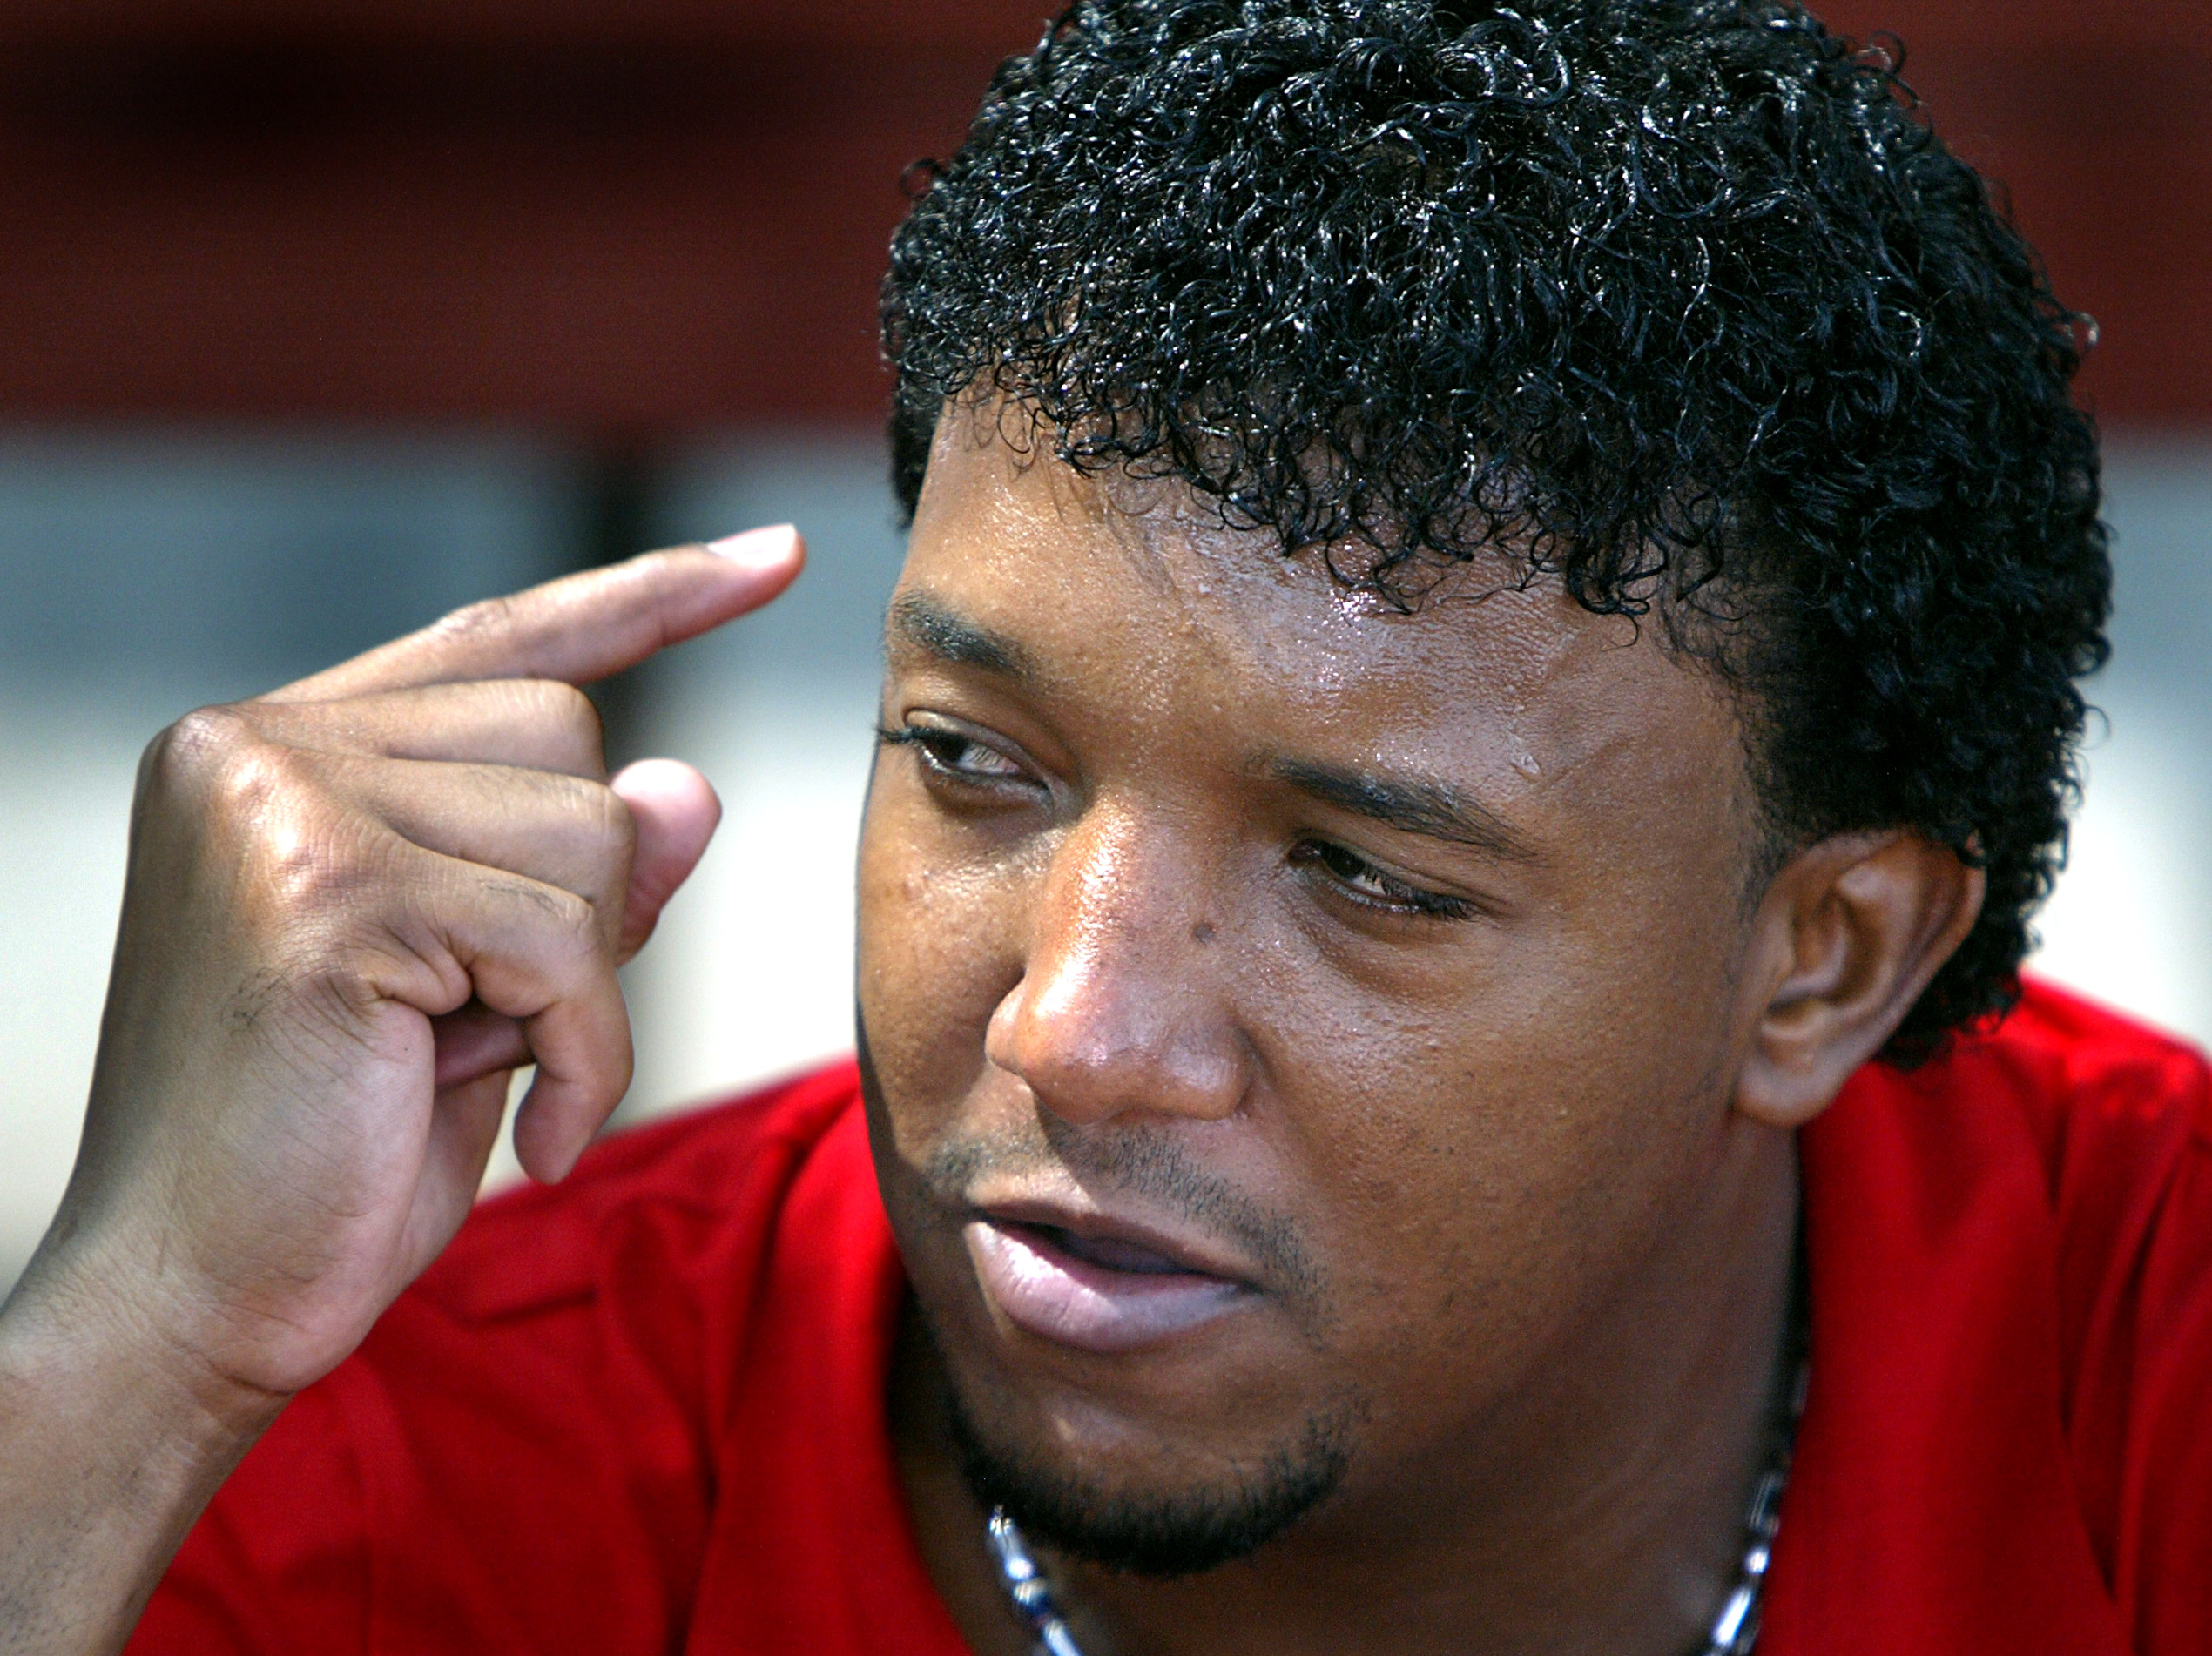 Astonishing The 8 Most Important Jheri Curls Ever From Pedro Martinez To Hairstyle Inspiration Daily Dogsangcom